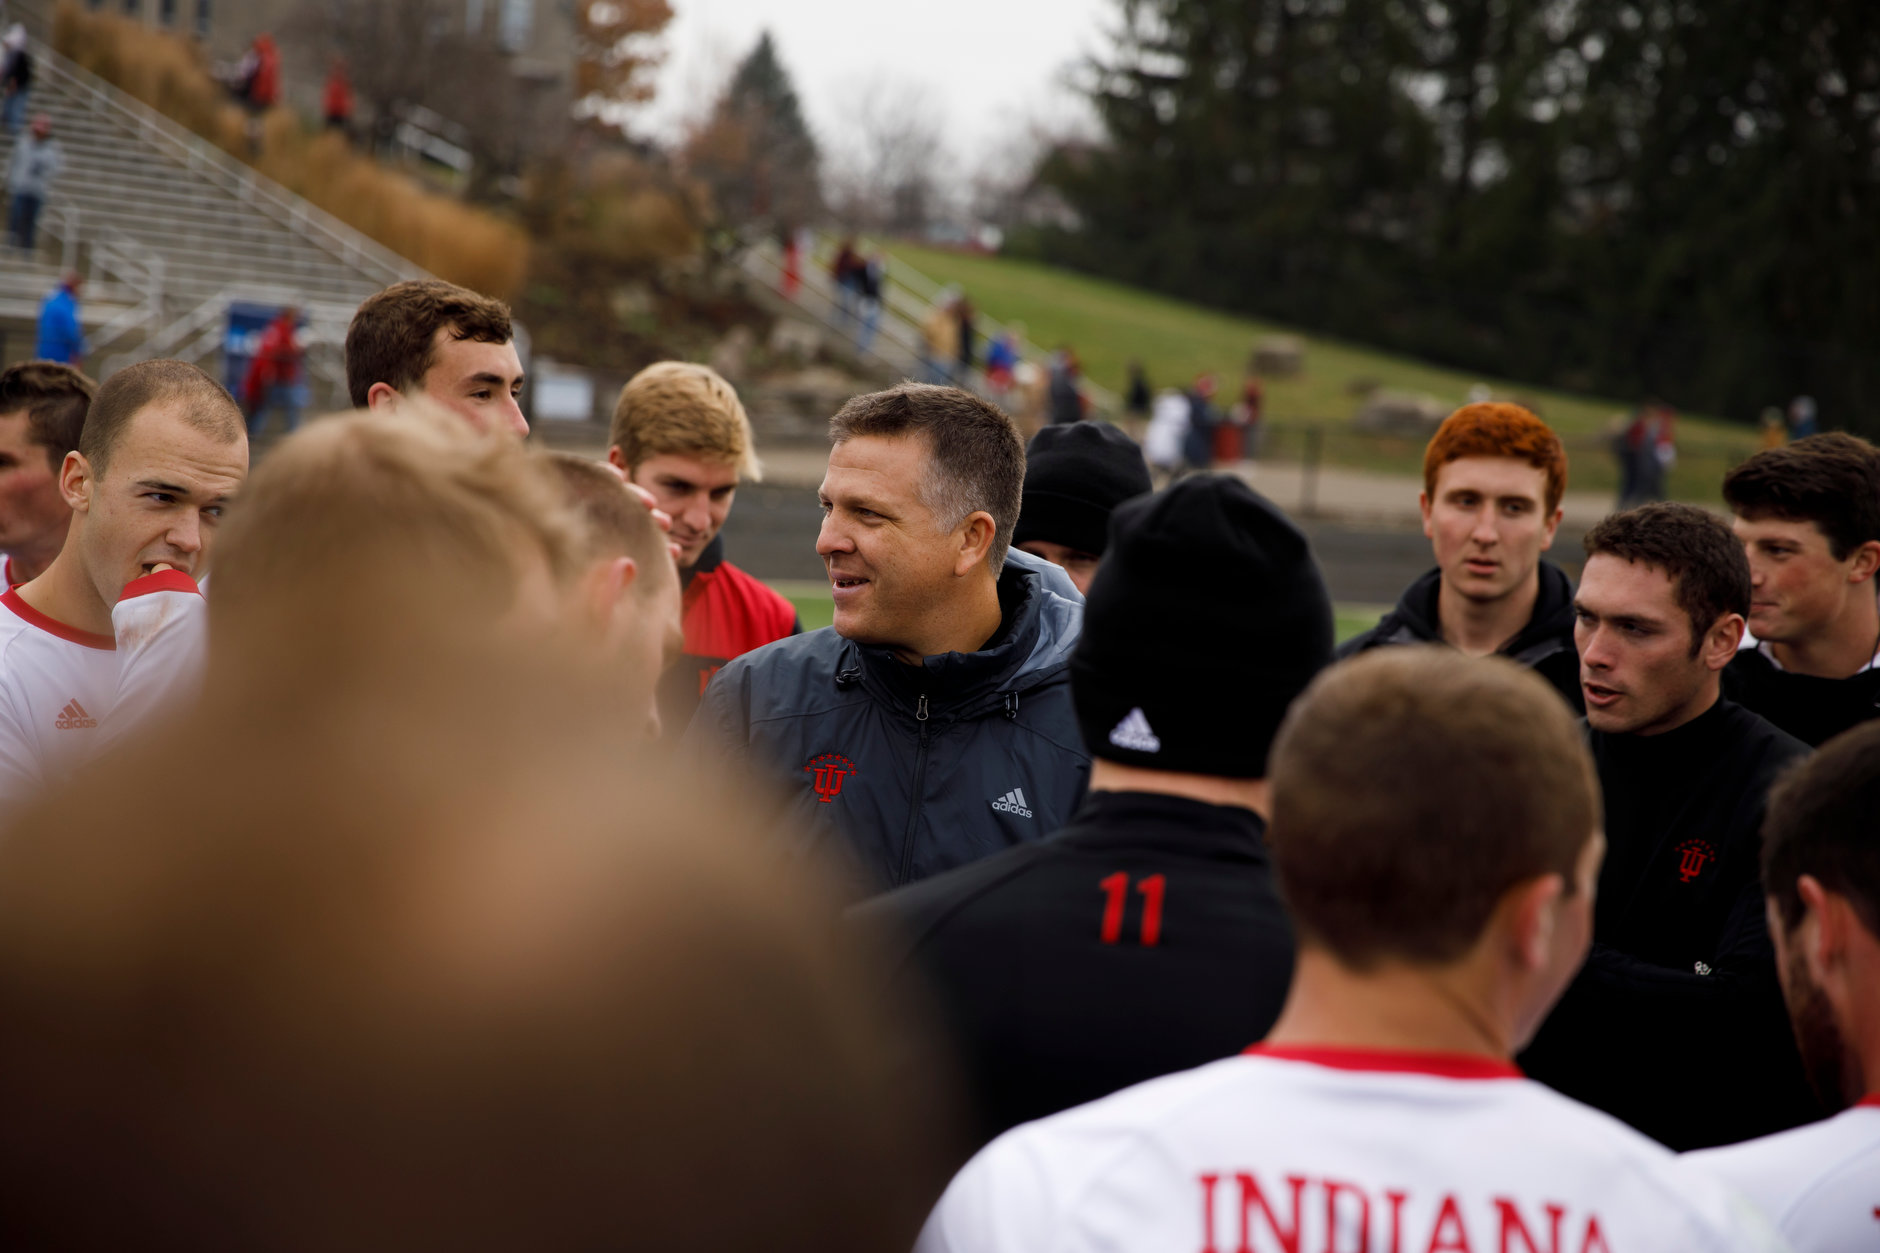 Indiana head coach Todd Yeagley speaks with his players following a 4-0 win against Connecticut in an NCAA men's soccer tournament match at Bill Armstrong Stadium in Bloomington, Ind. on Sunday, Nov. 18, 2018. (James Brosher for The Herald-Times)